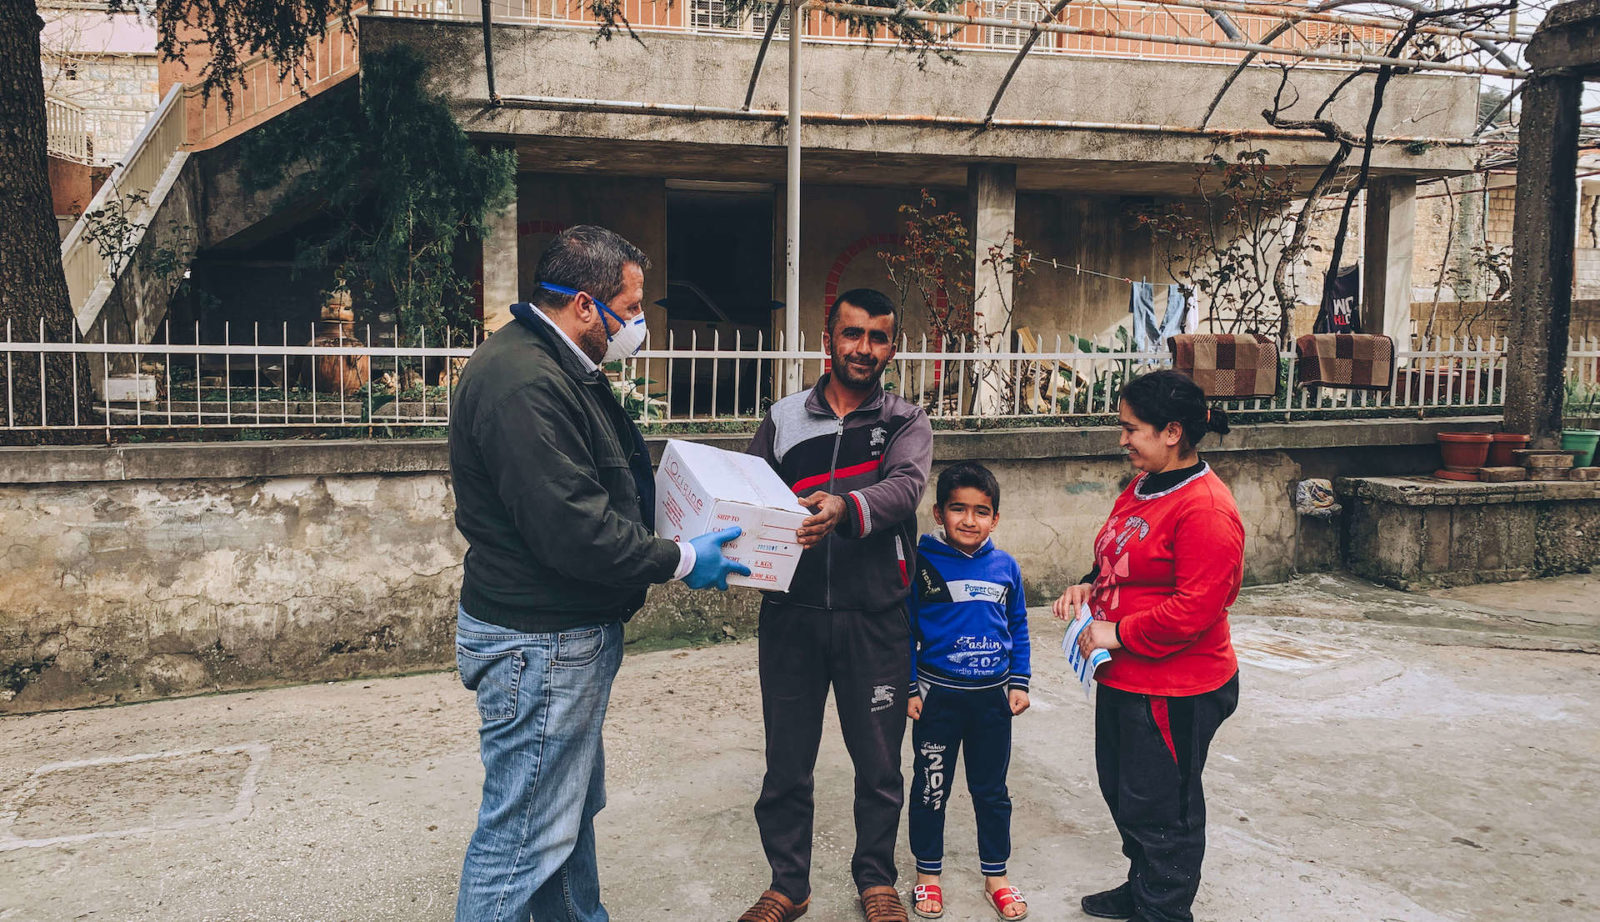 Help The Persecuted's Field Team in Lebanon delivers critical care supplies